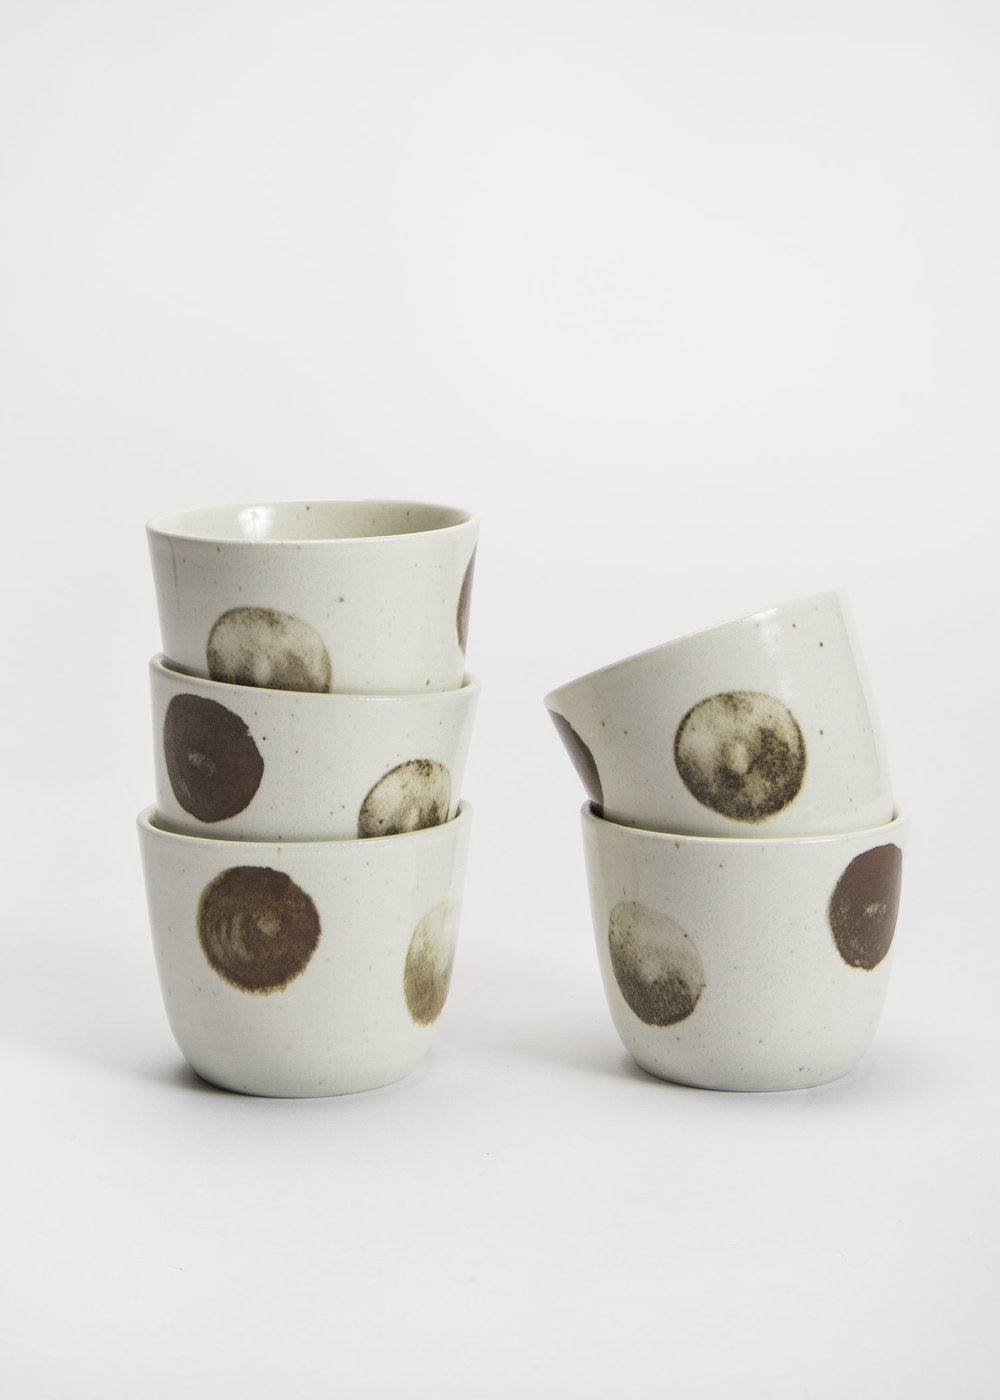 Japanese Stoneware Cups with Dots  $9 each